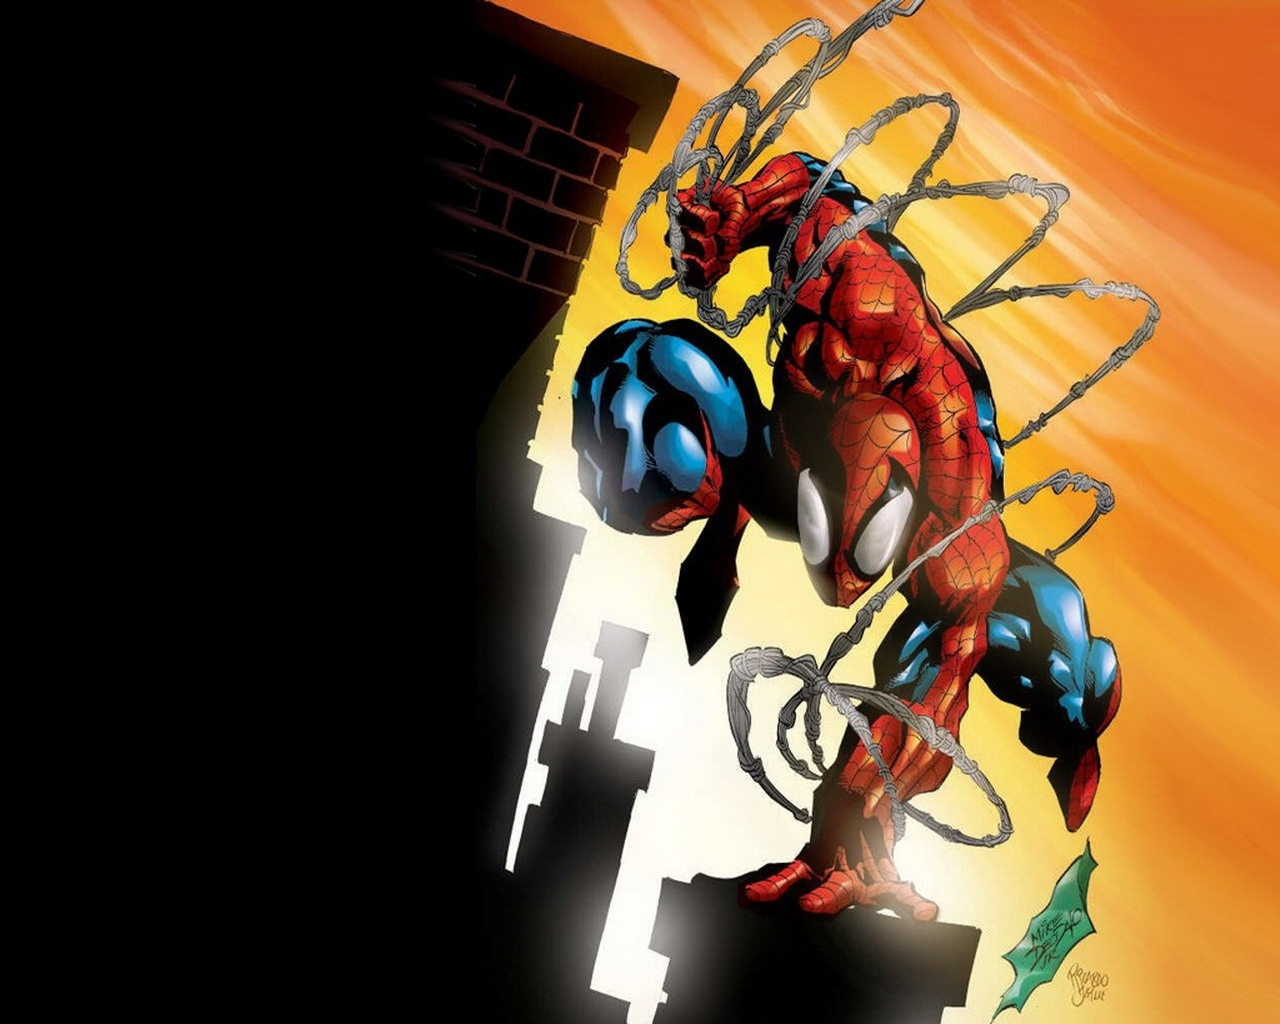 ultimate spider-man wallpapers and background images - stmed